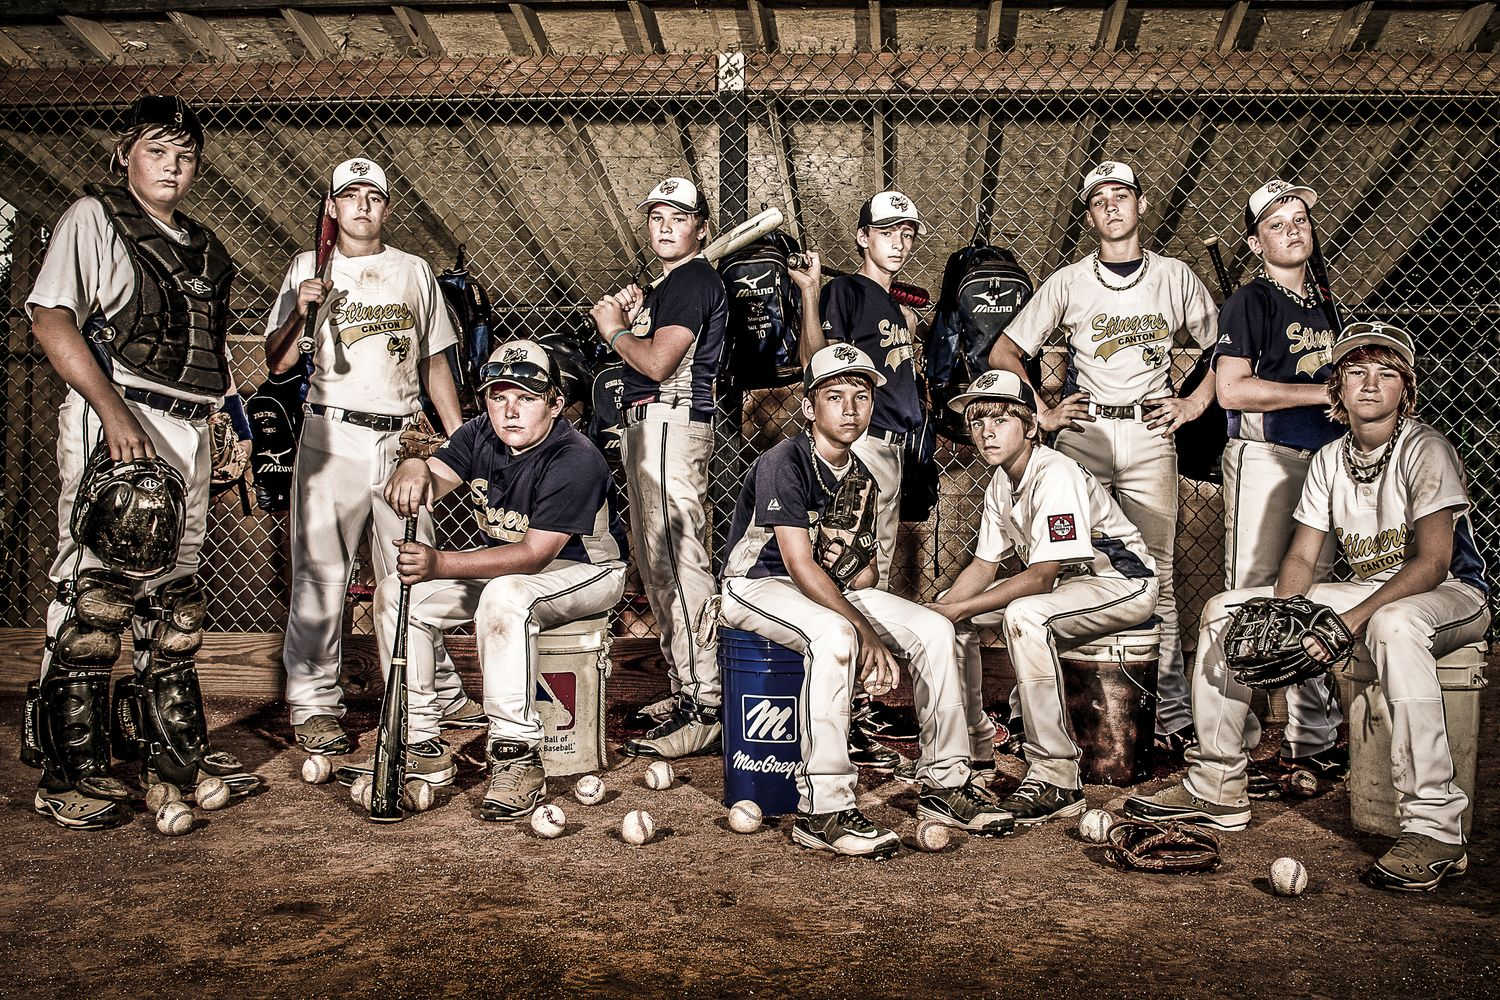 Photography Baseball Team Pictures Poses Softball Photography Baseball Senior Pictures